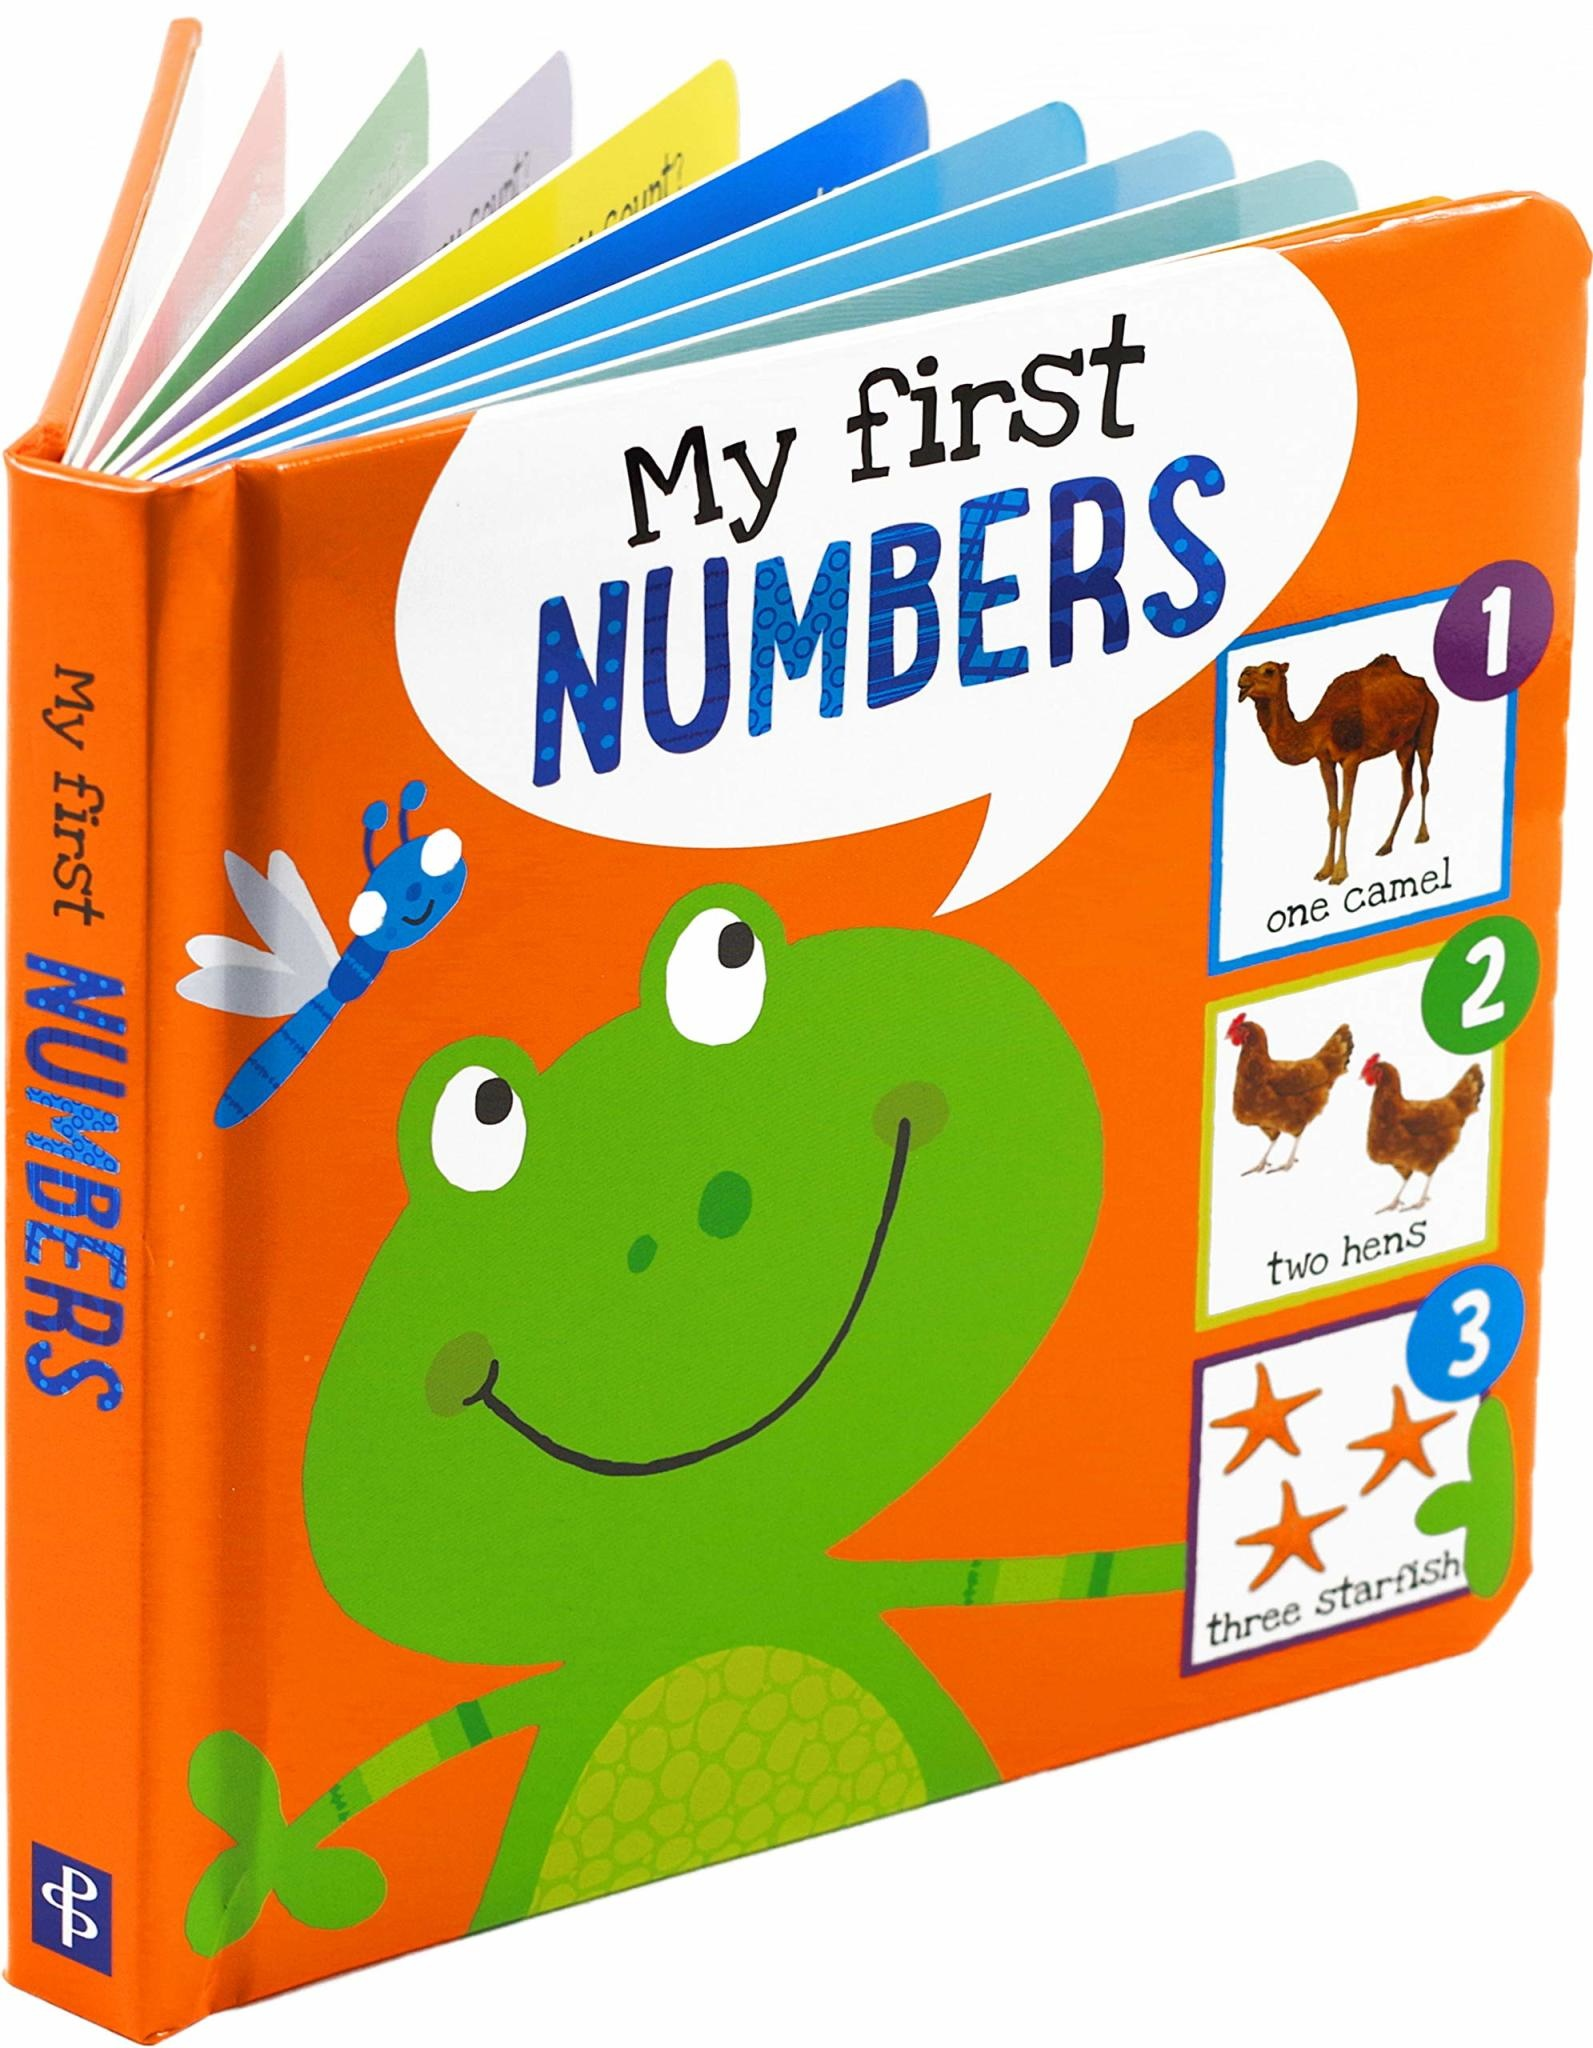 Peter Pauper Press Board Book: I'm Learning My Numbers!